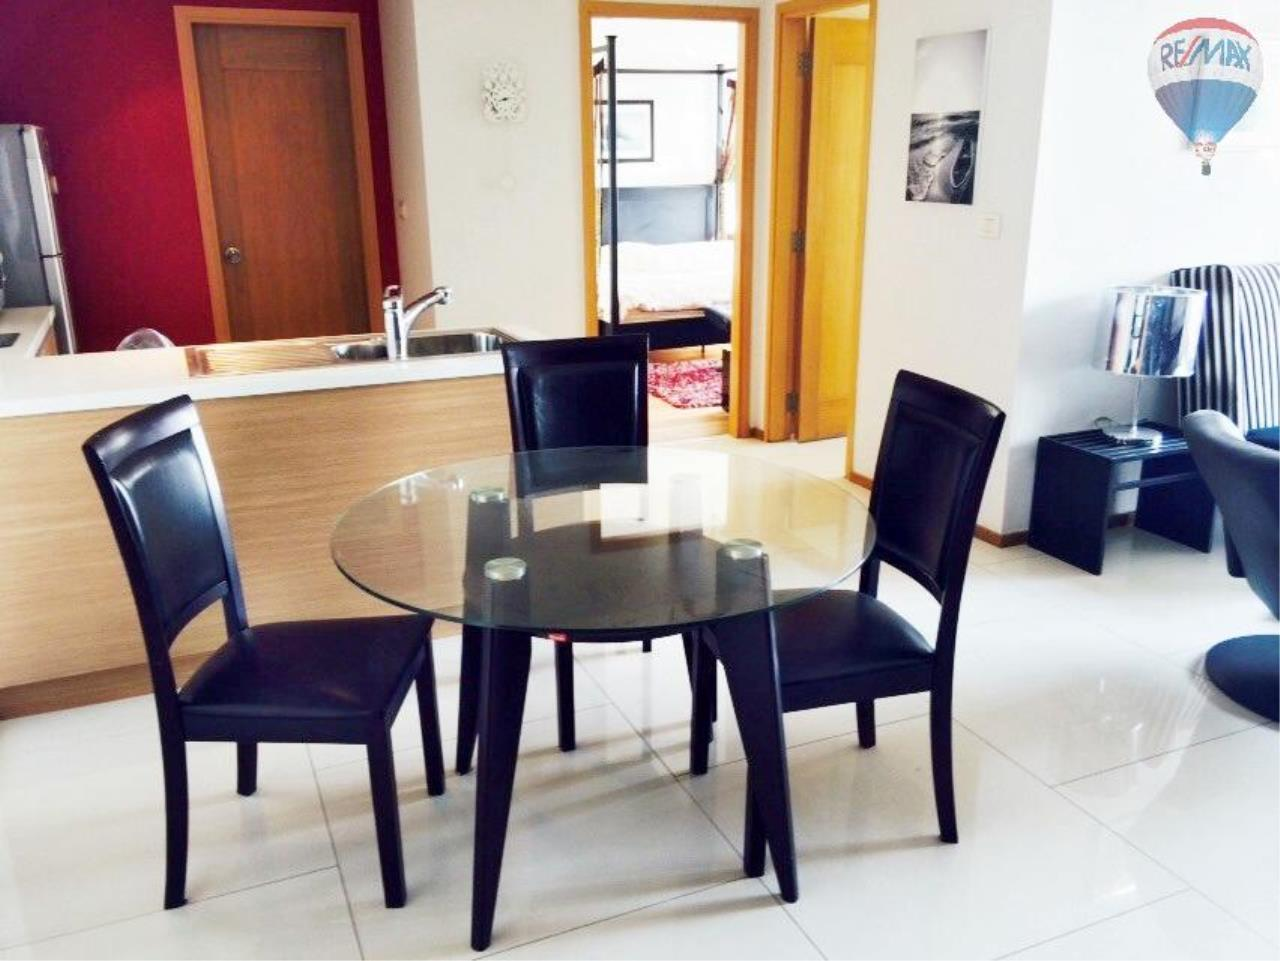 RE/MAX Properties Agency's Condominium for sale 1 bedroom 65 Sq.m. at Emporio Place 9